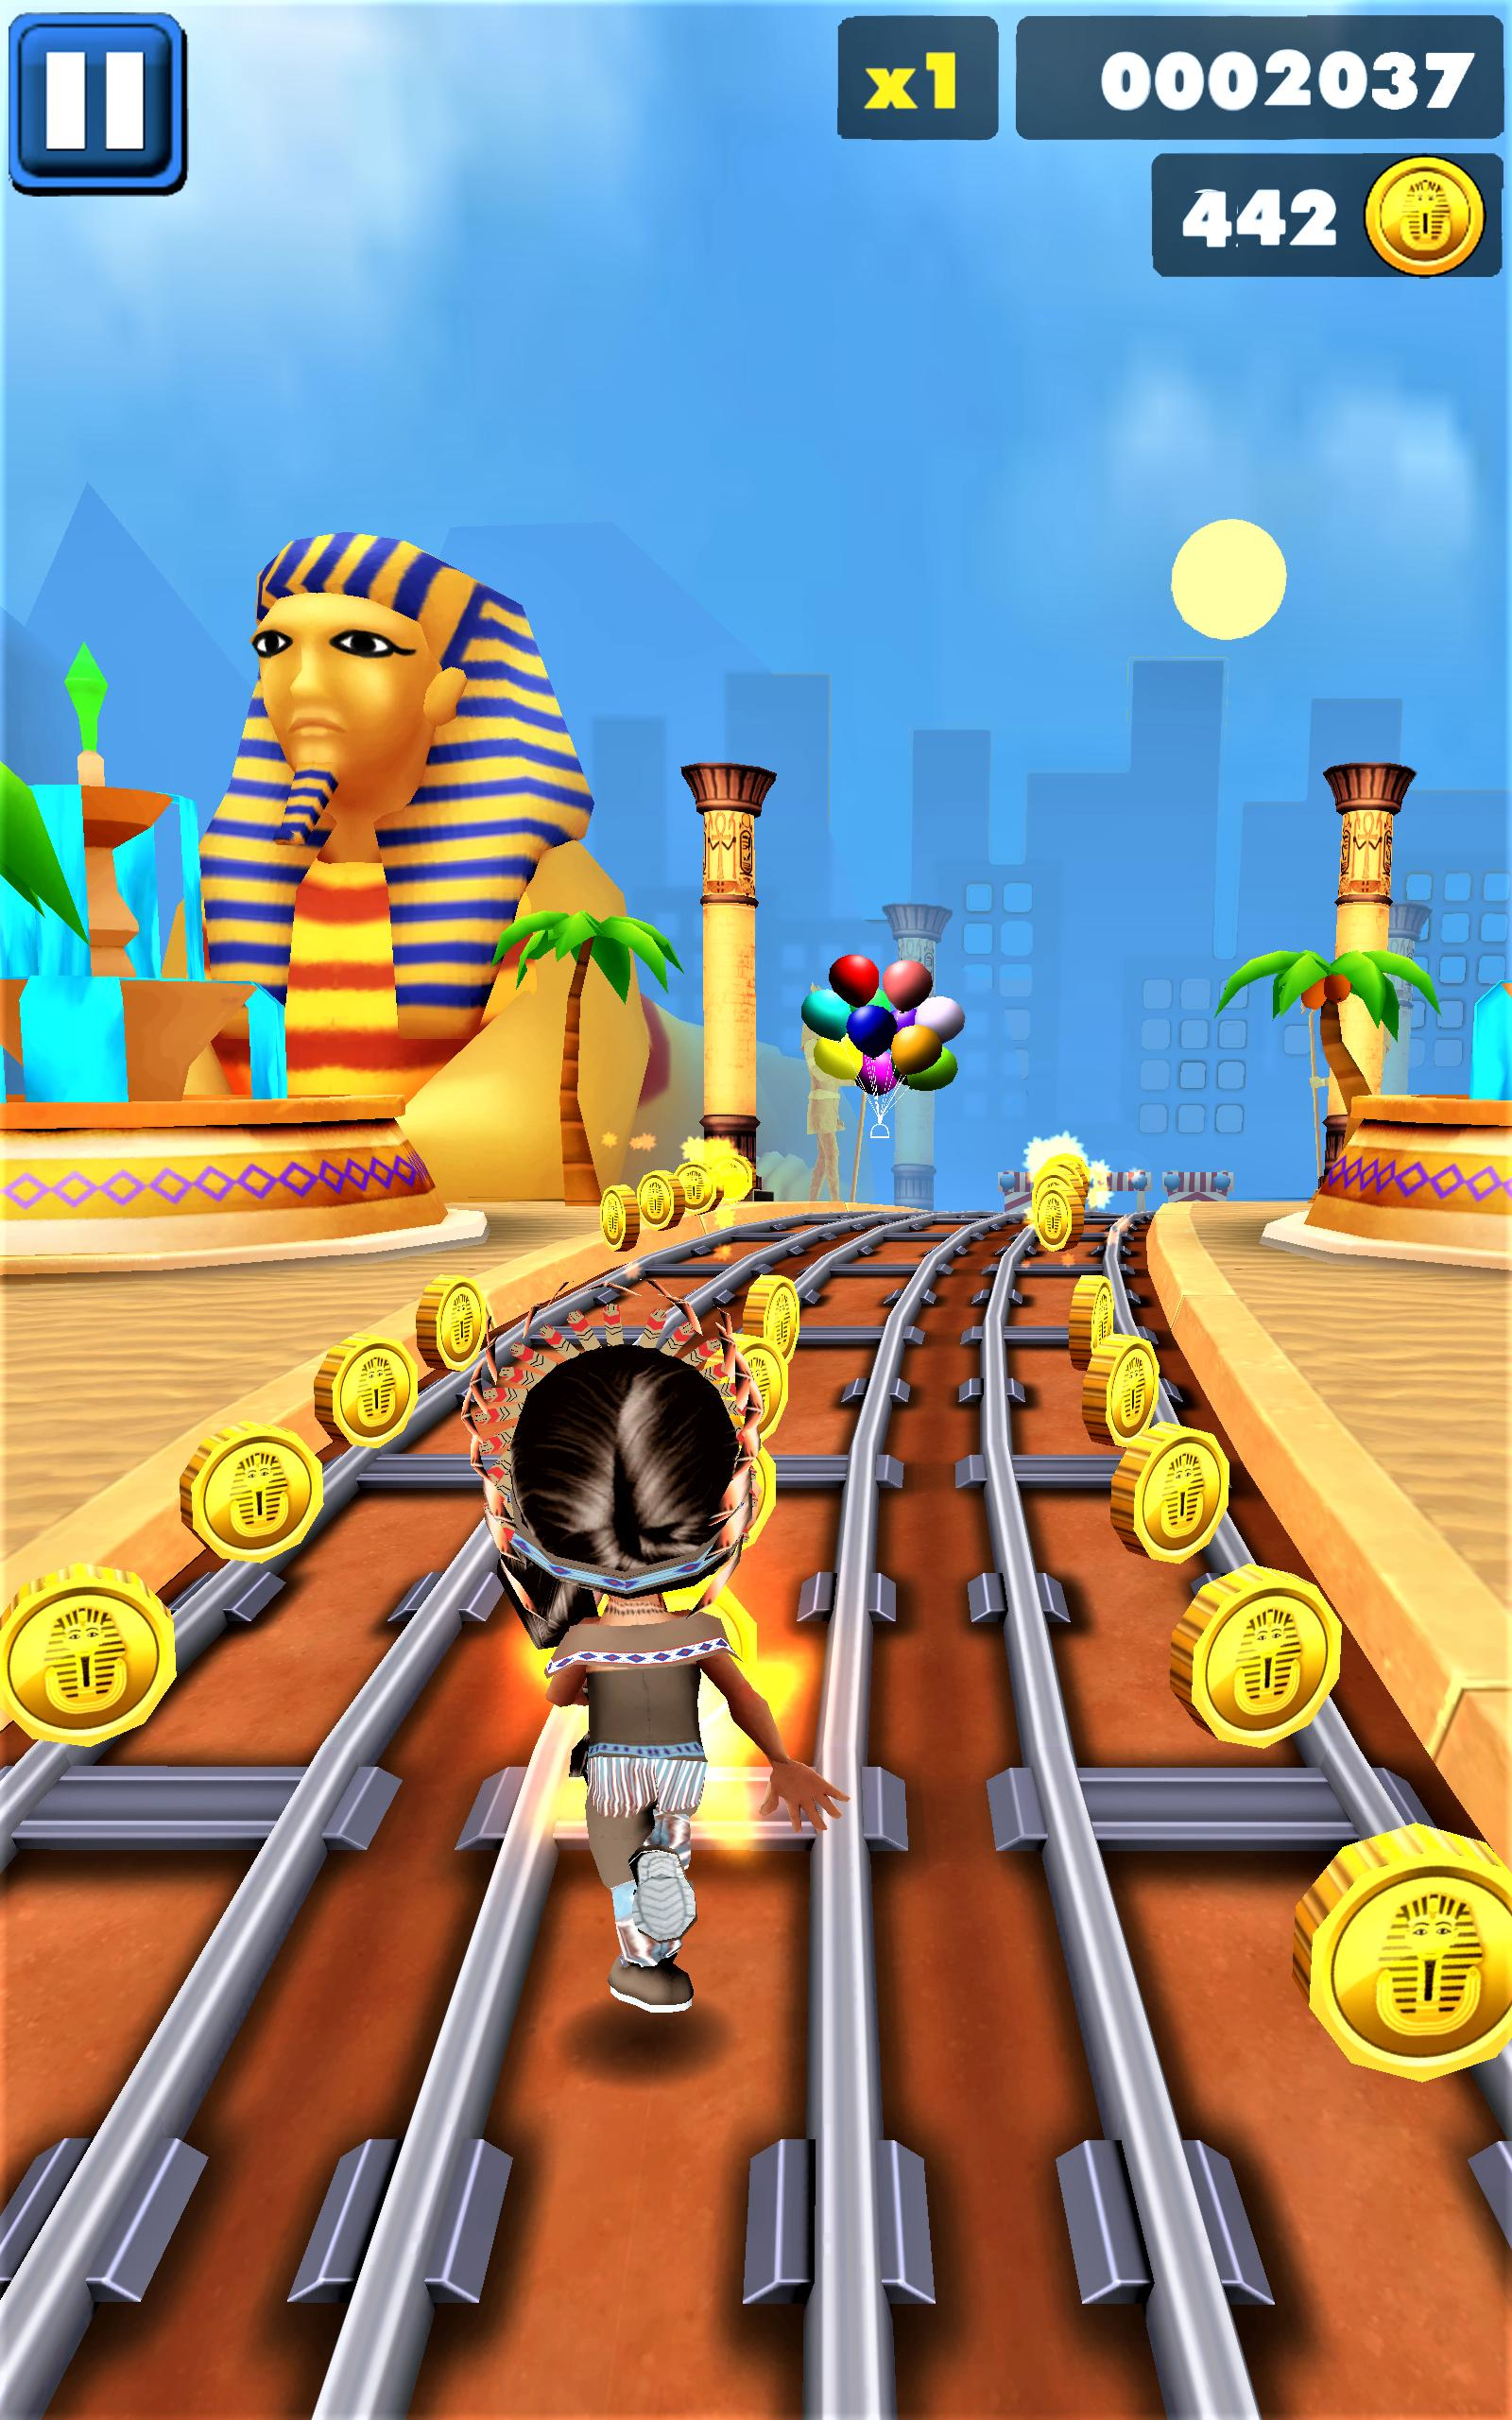 Bus Rail Rush - Multiplayer for Android - APK Download